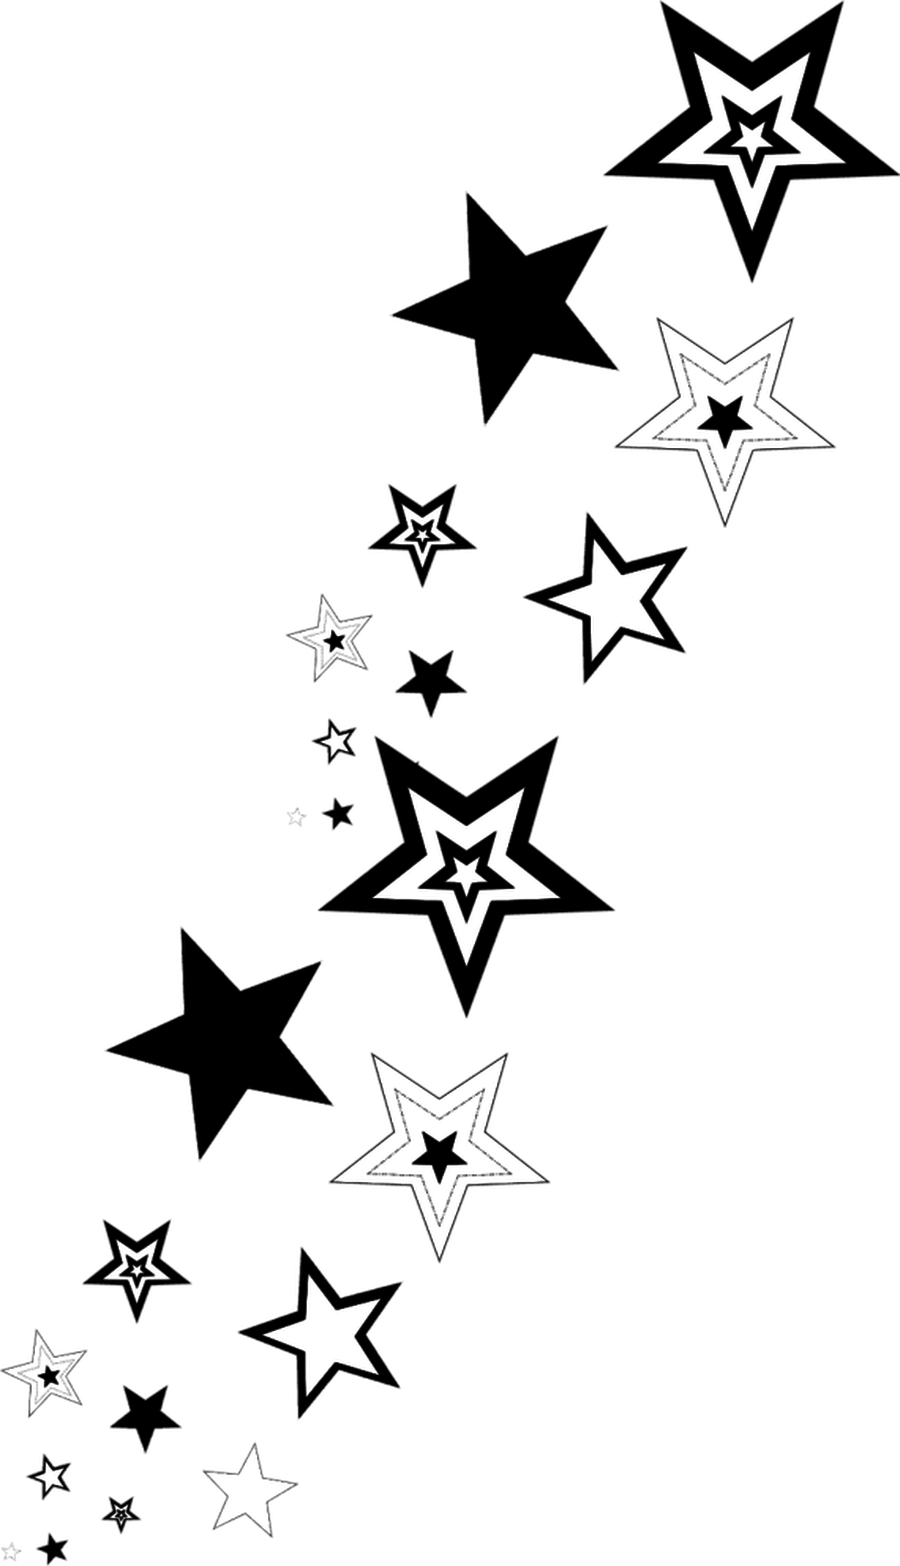 Star clipart black and white border graphic free Free Shooting Stars Clipart - Clip Art Library graphic free